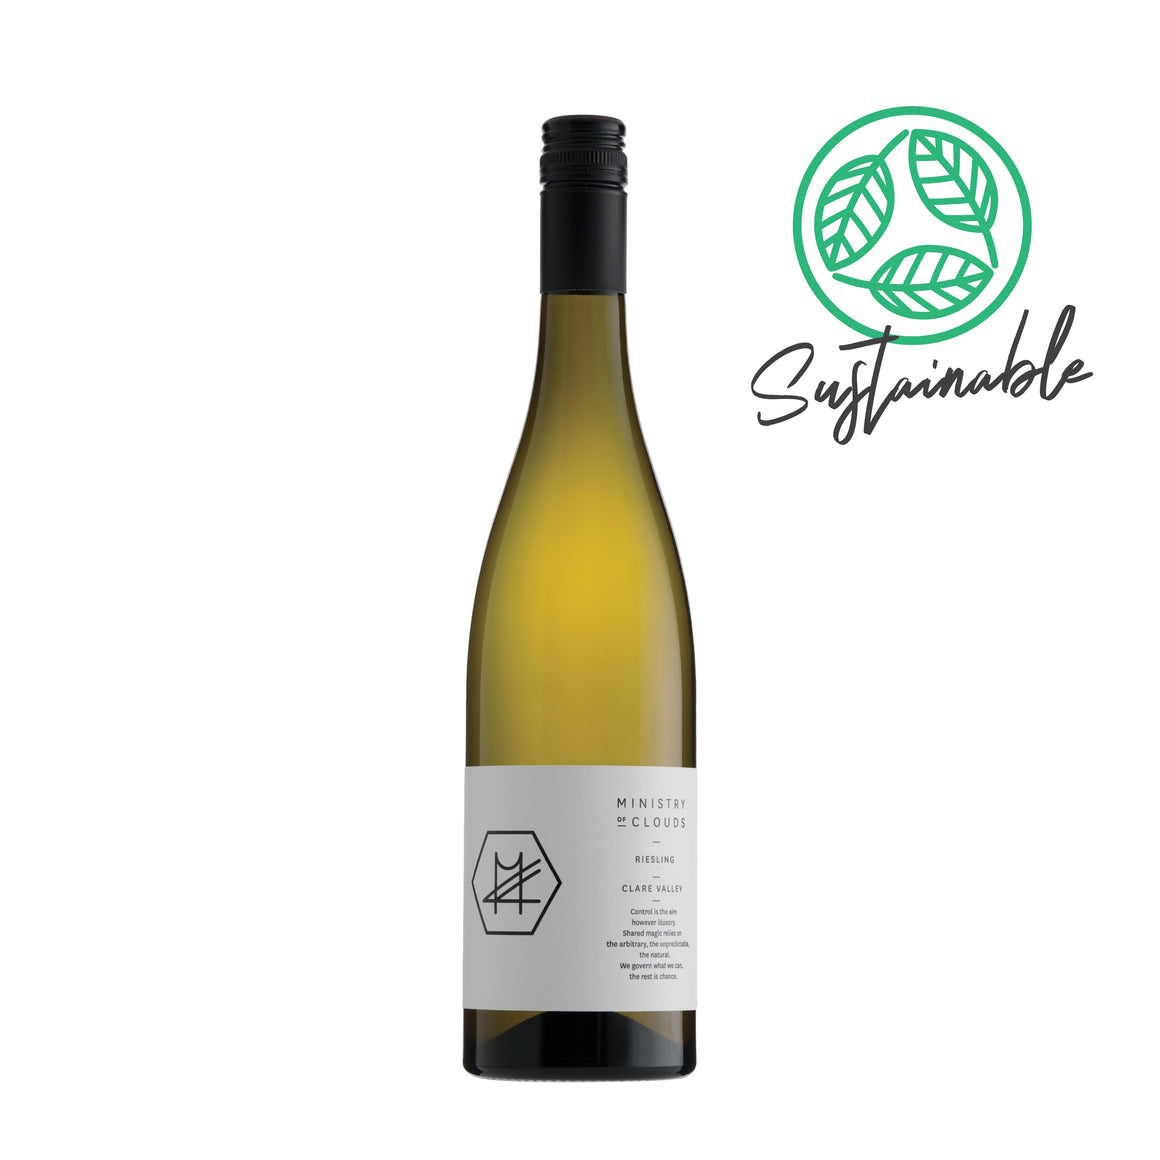 MINISTRY OF CLOUDS RIESLING 2020